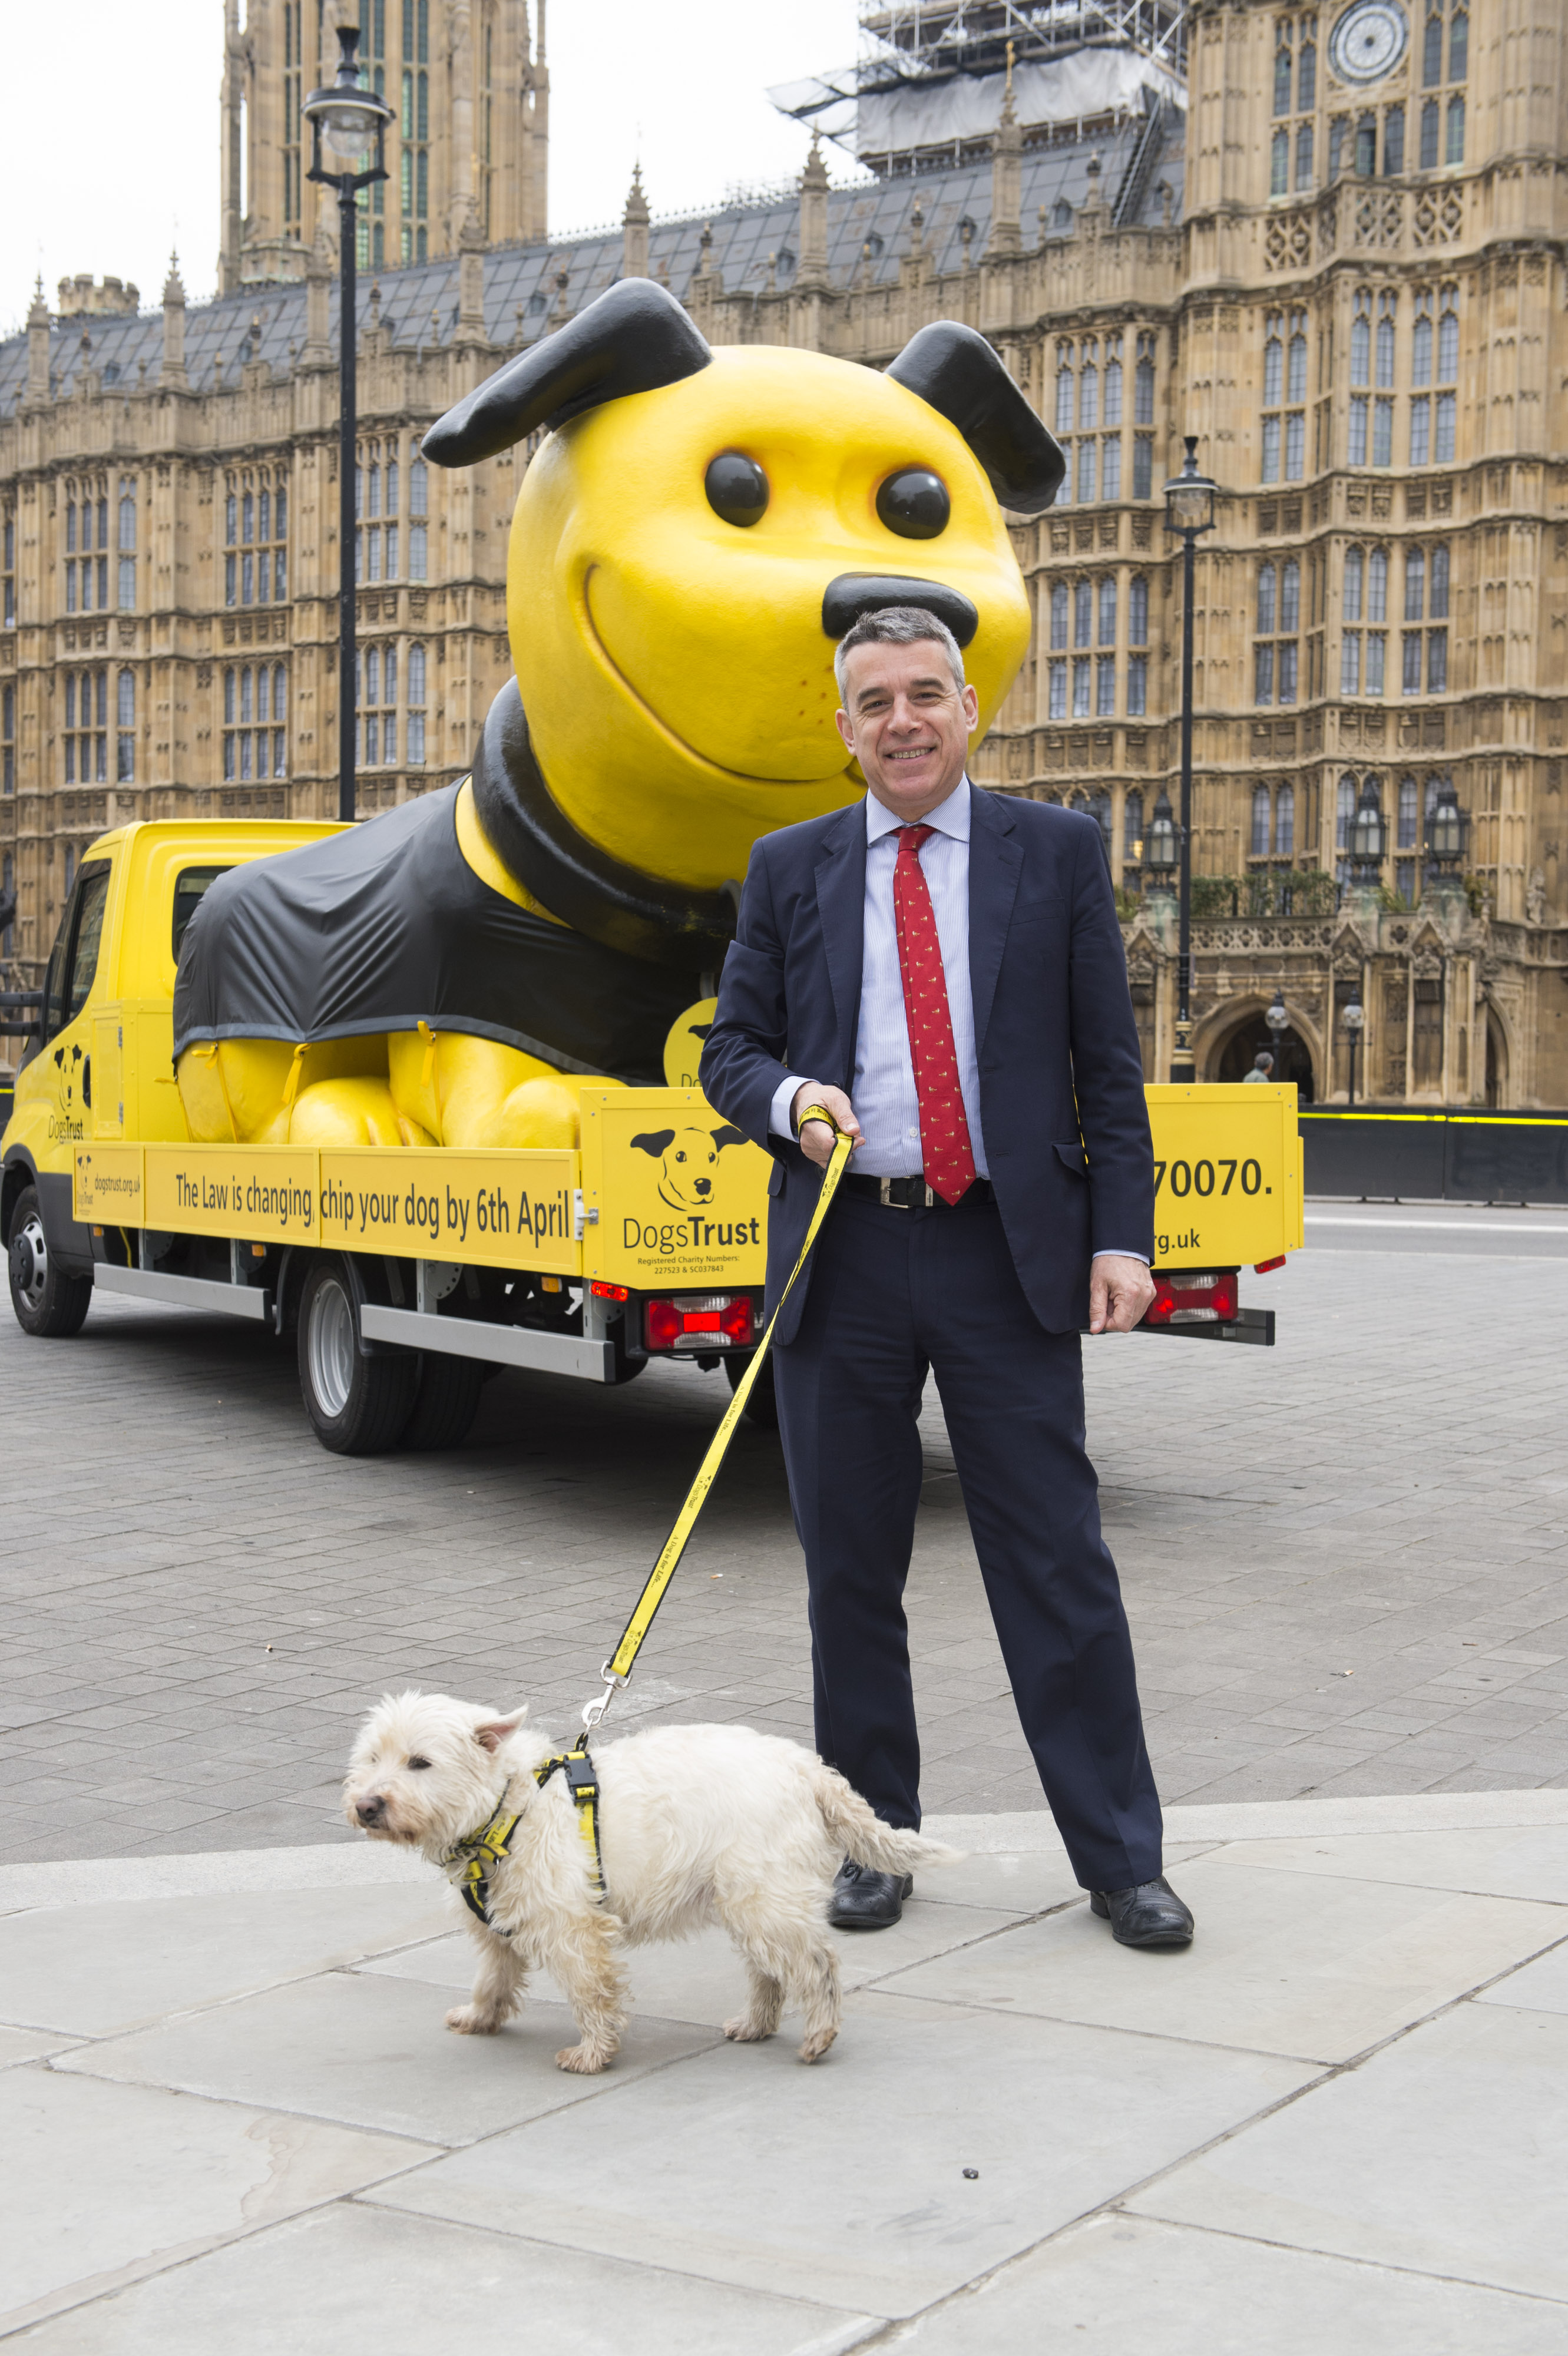 Jeff_Smith_Dog_Trust.JPG